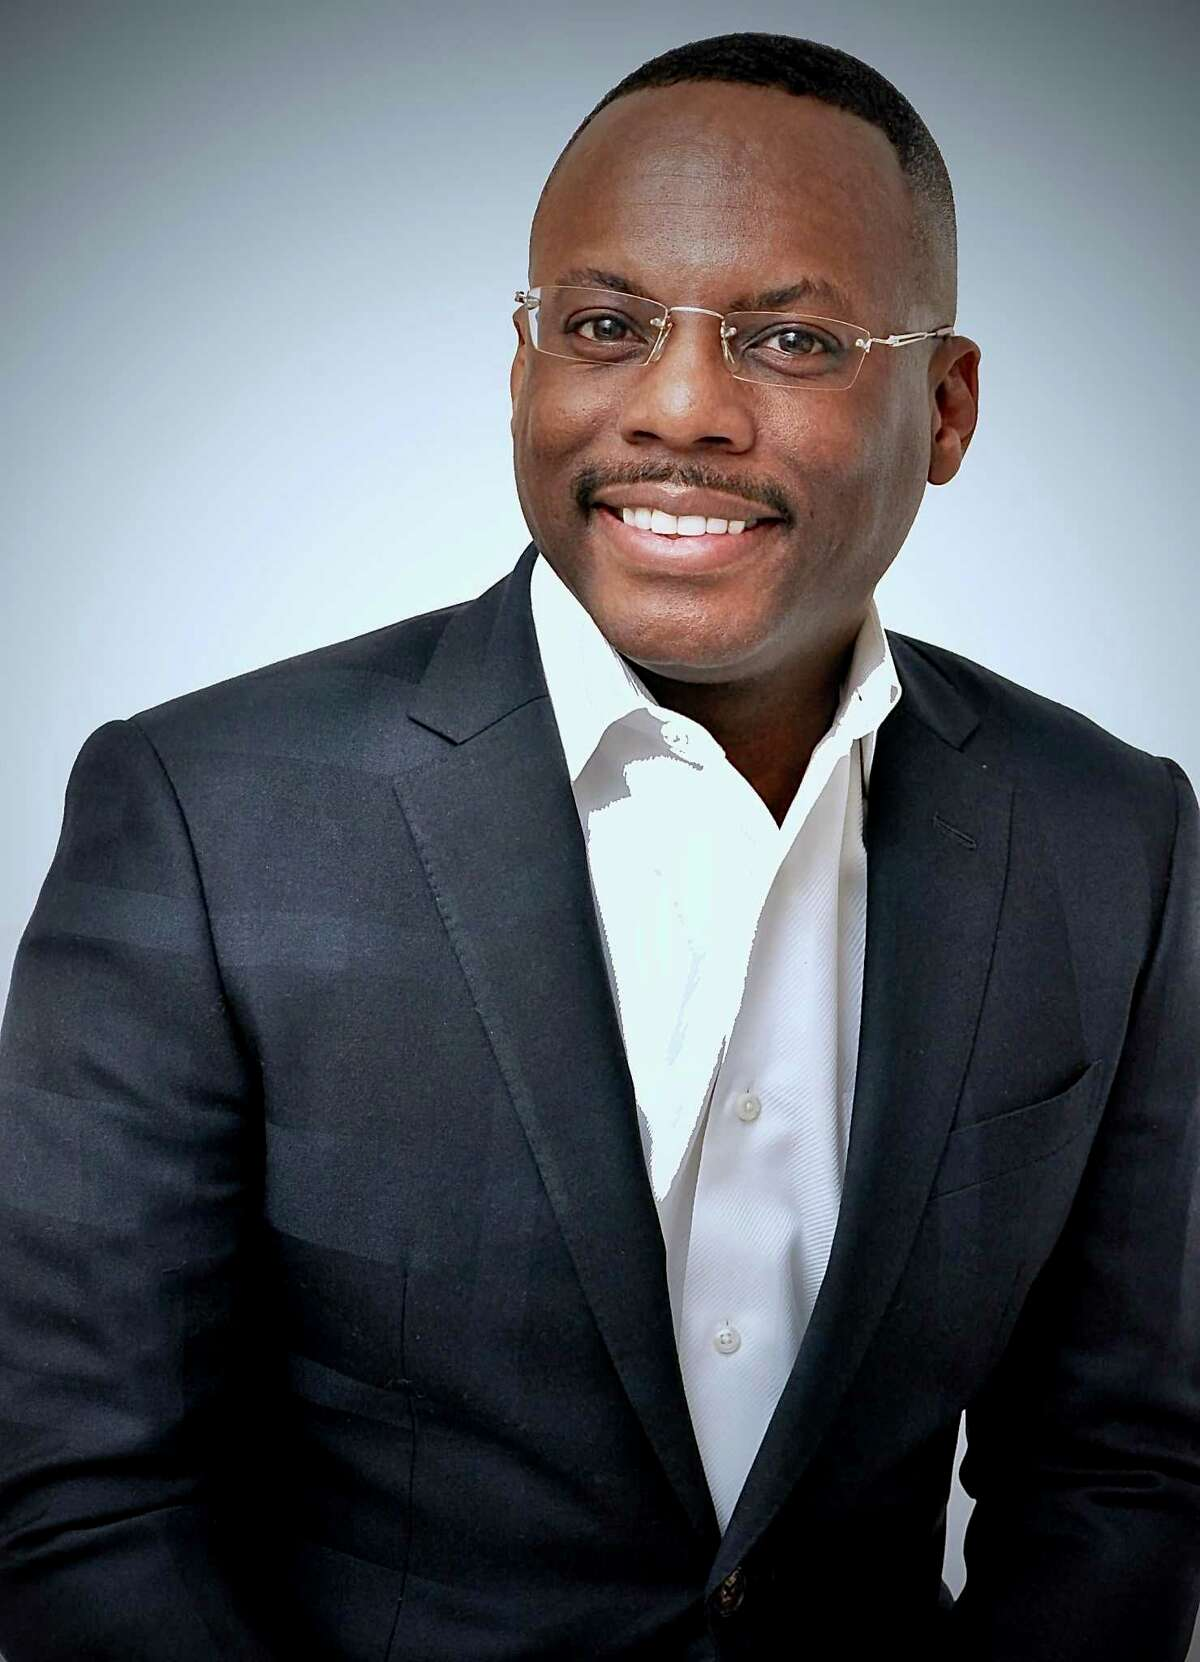 Michael Matthews is the chief diversity officer at Synchrony.